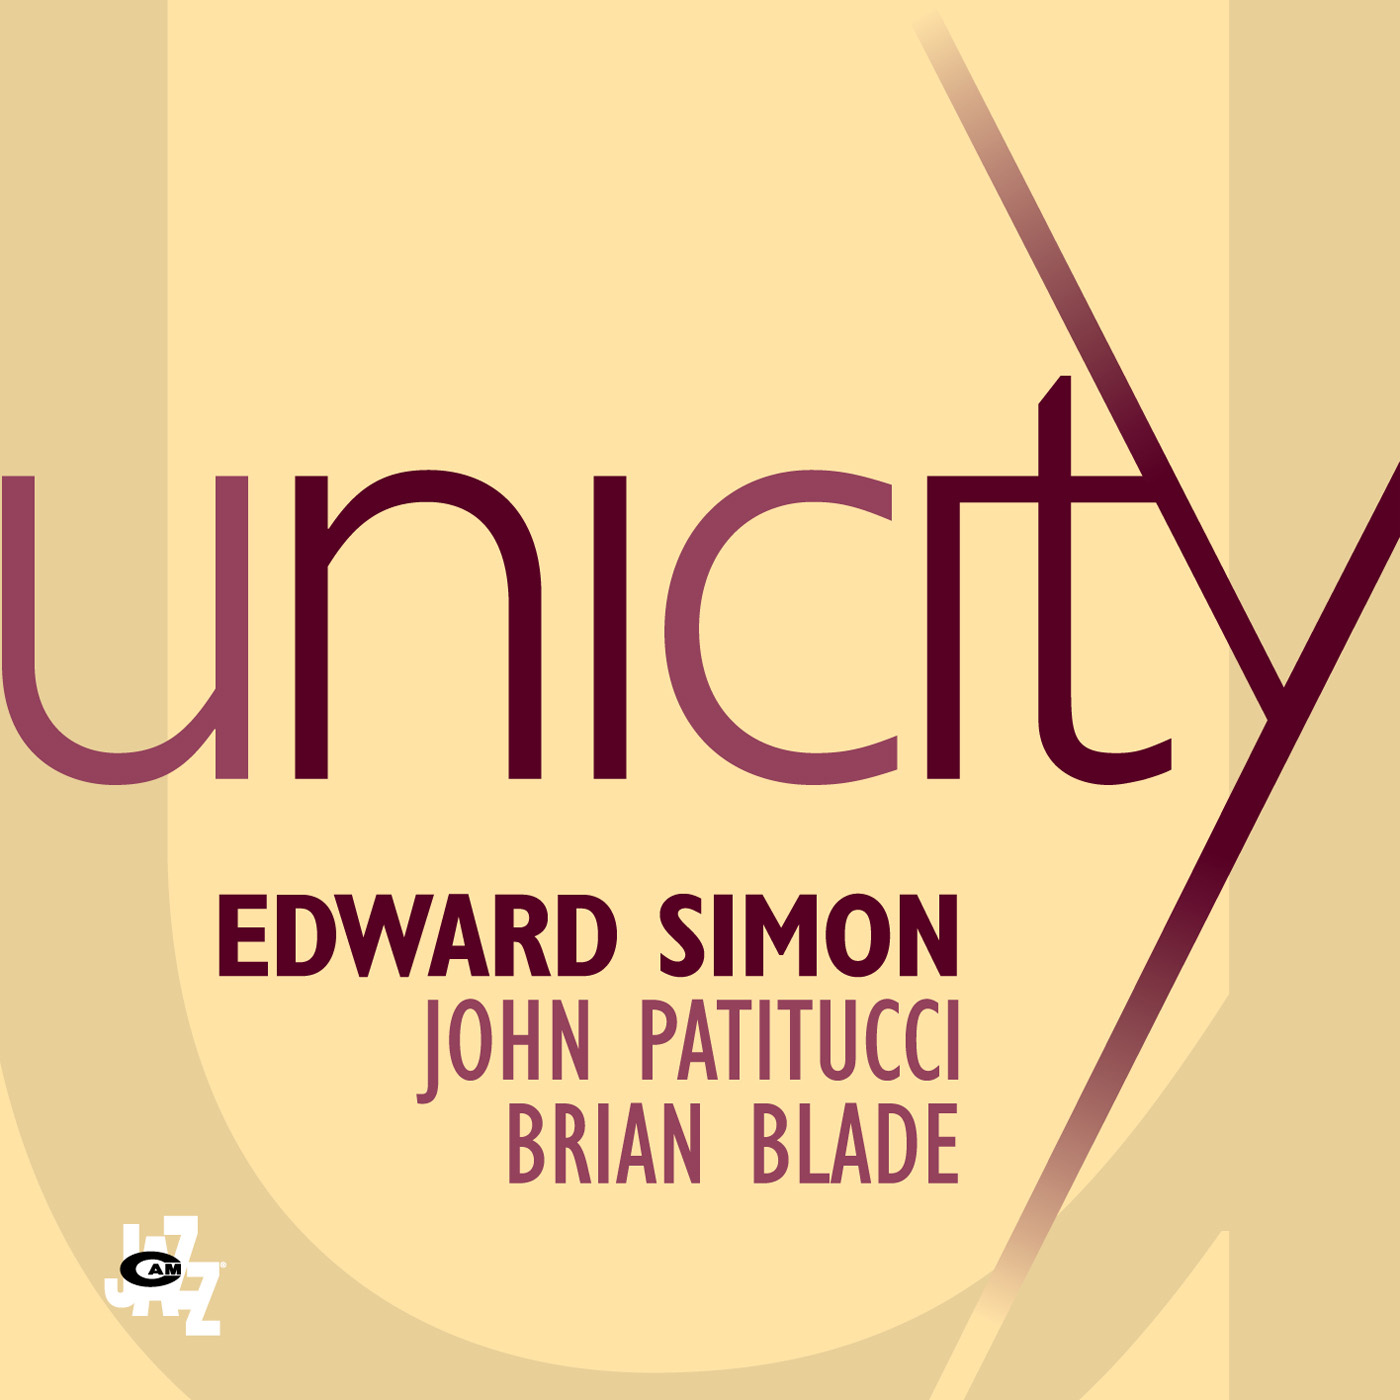 Unicity by Edward Simon cover